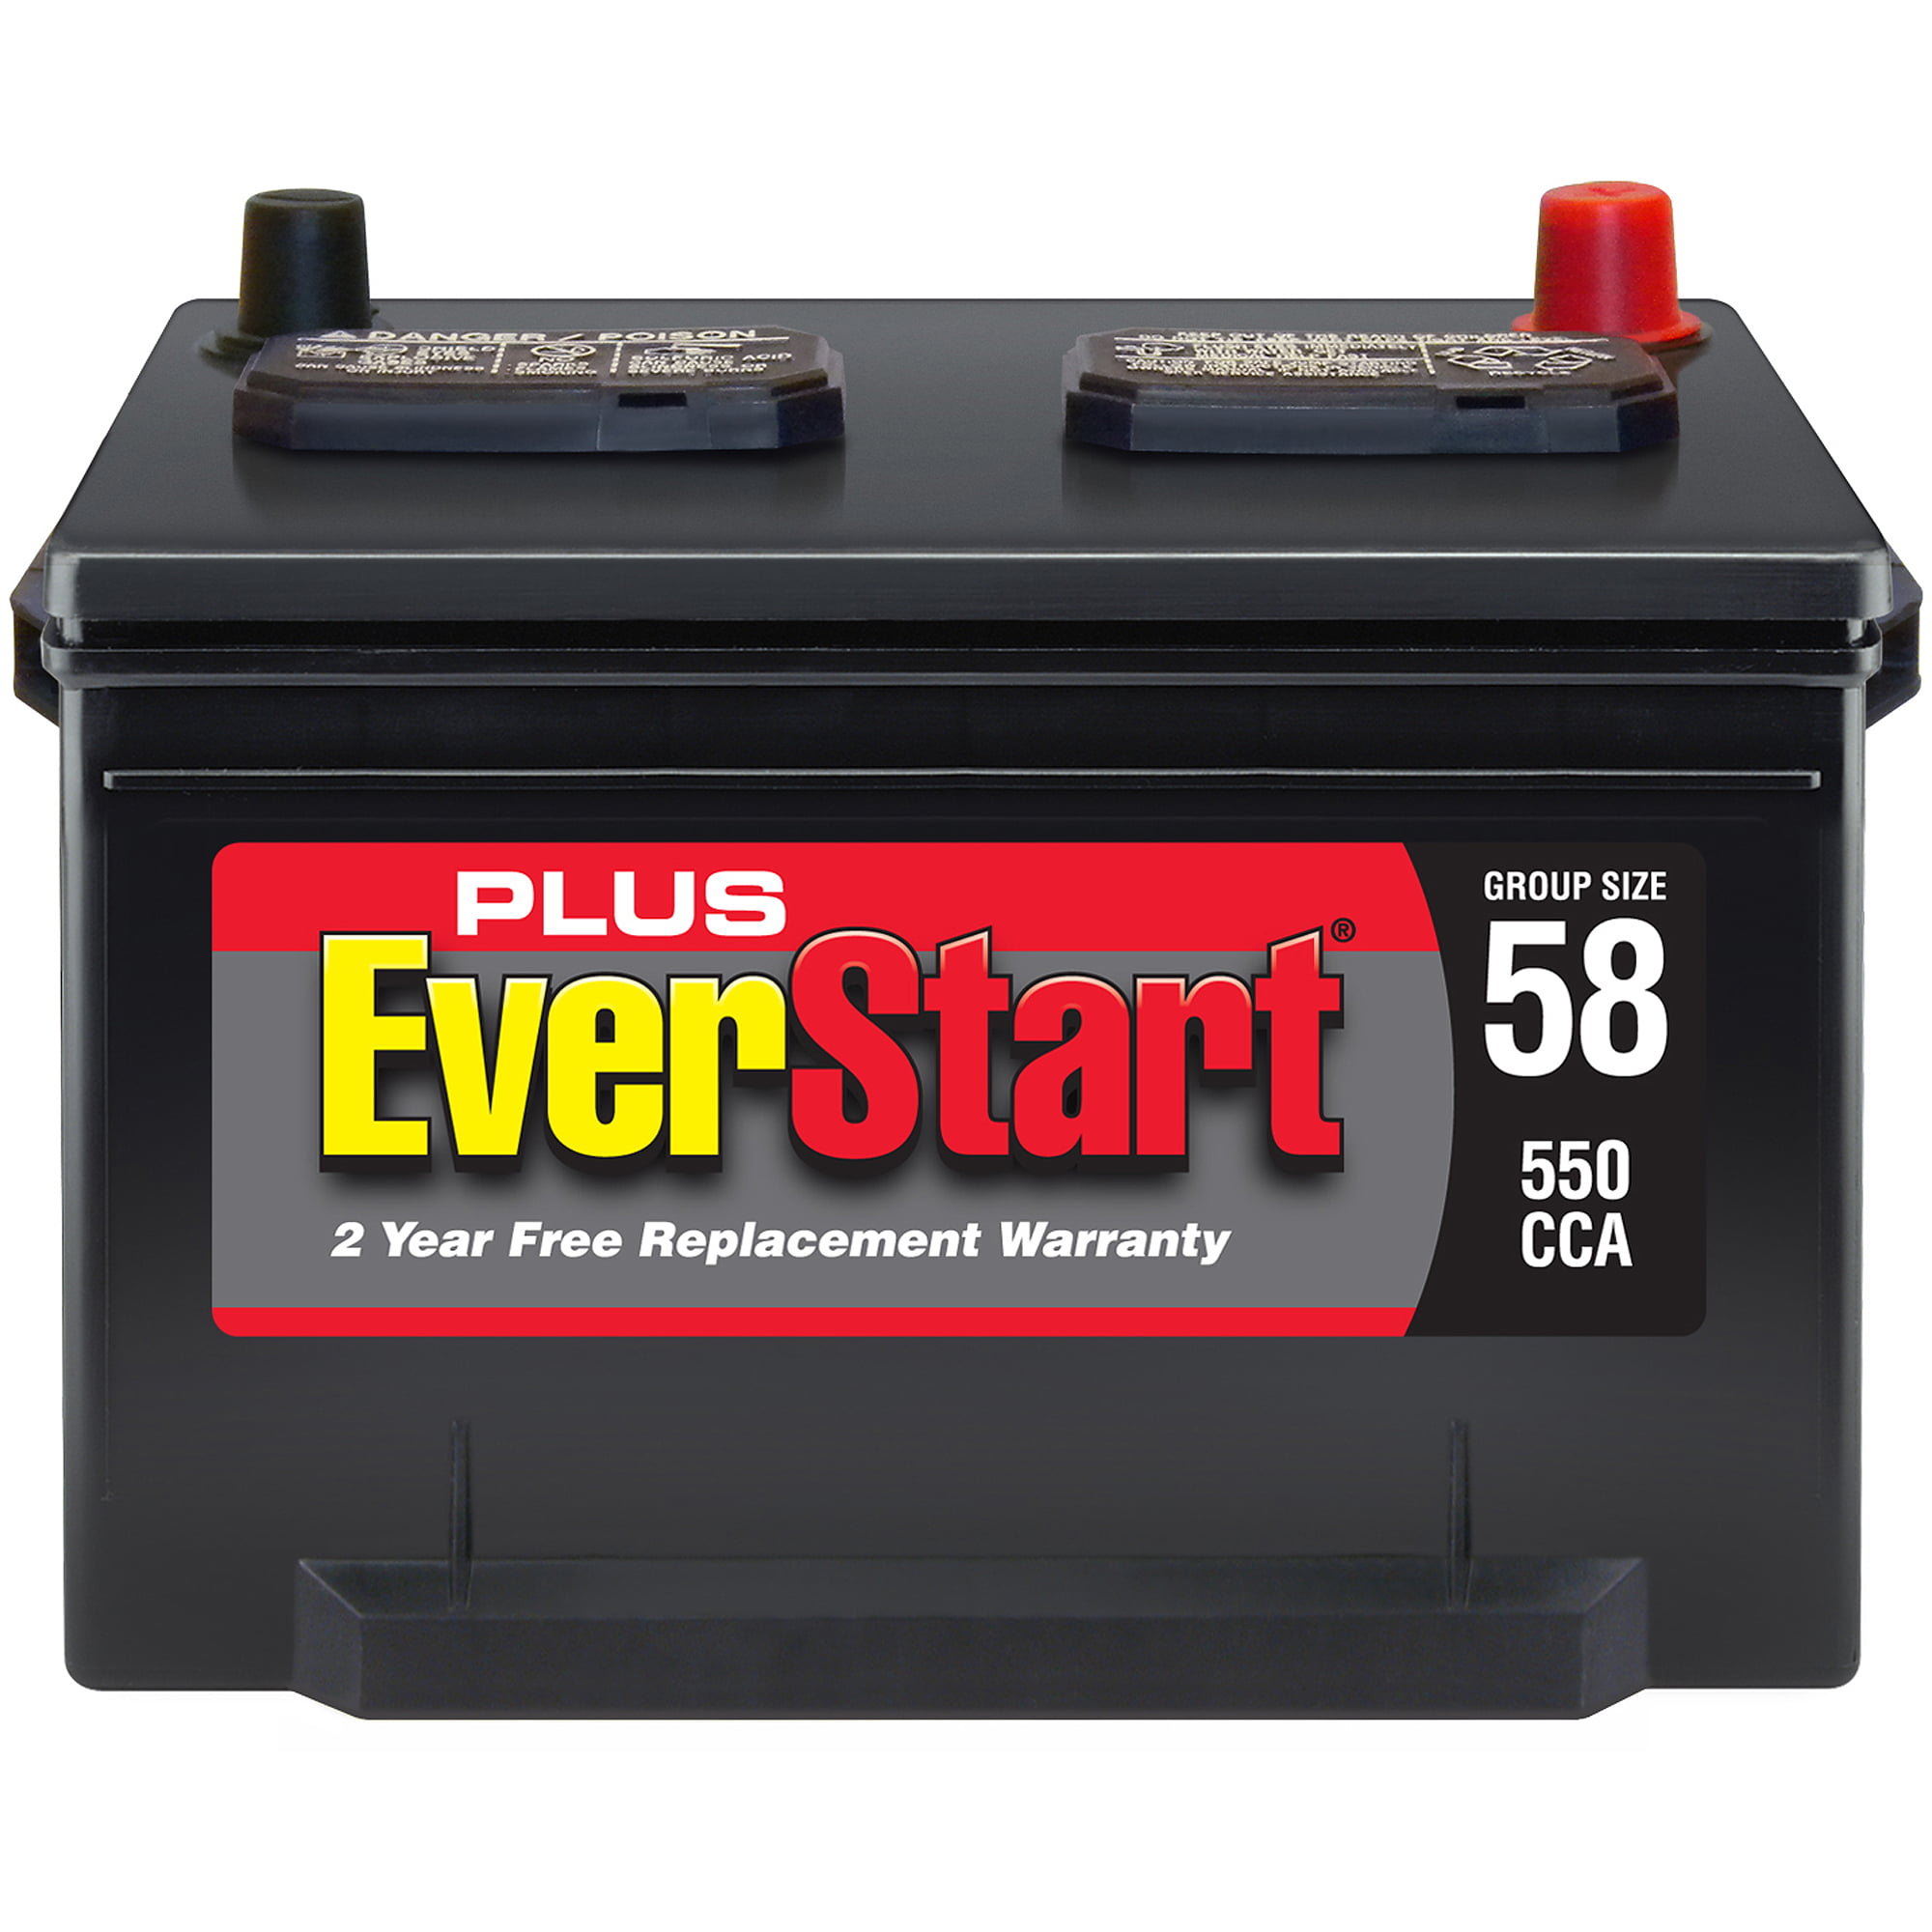 Ford 2000 Tractor Battery Size : Everstart battery group size chart list of common